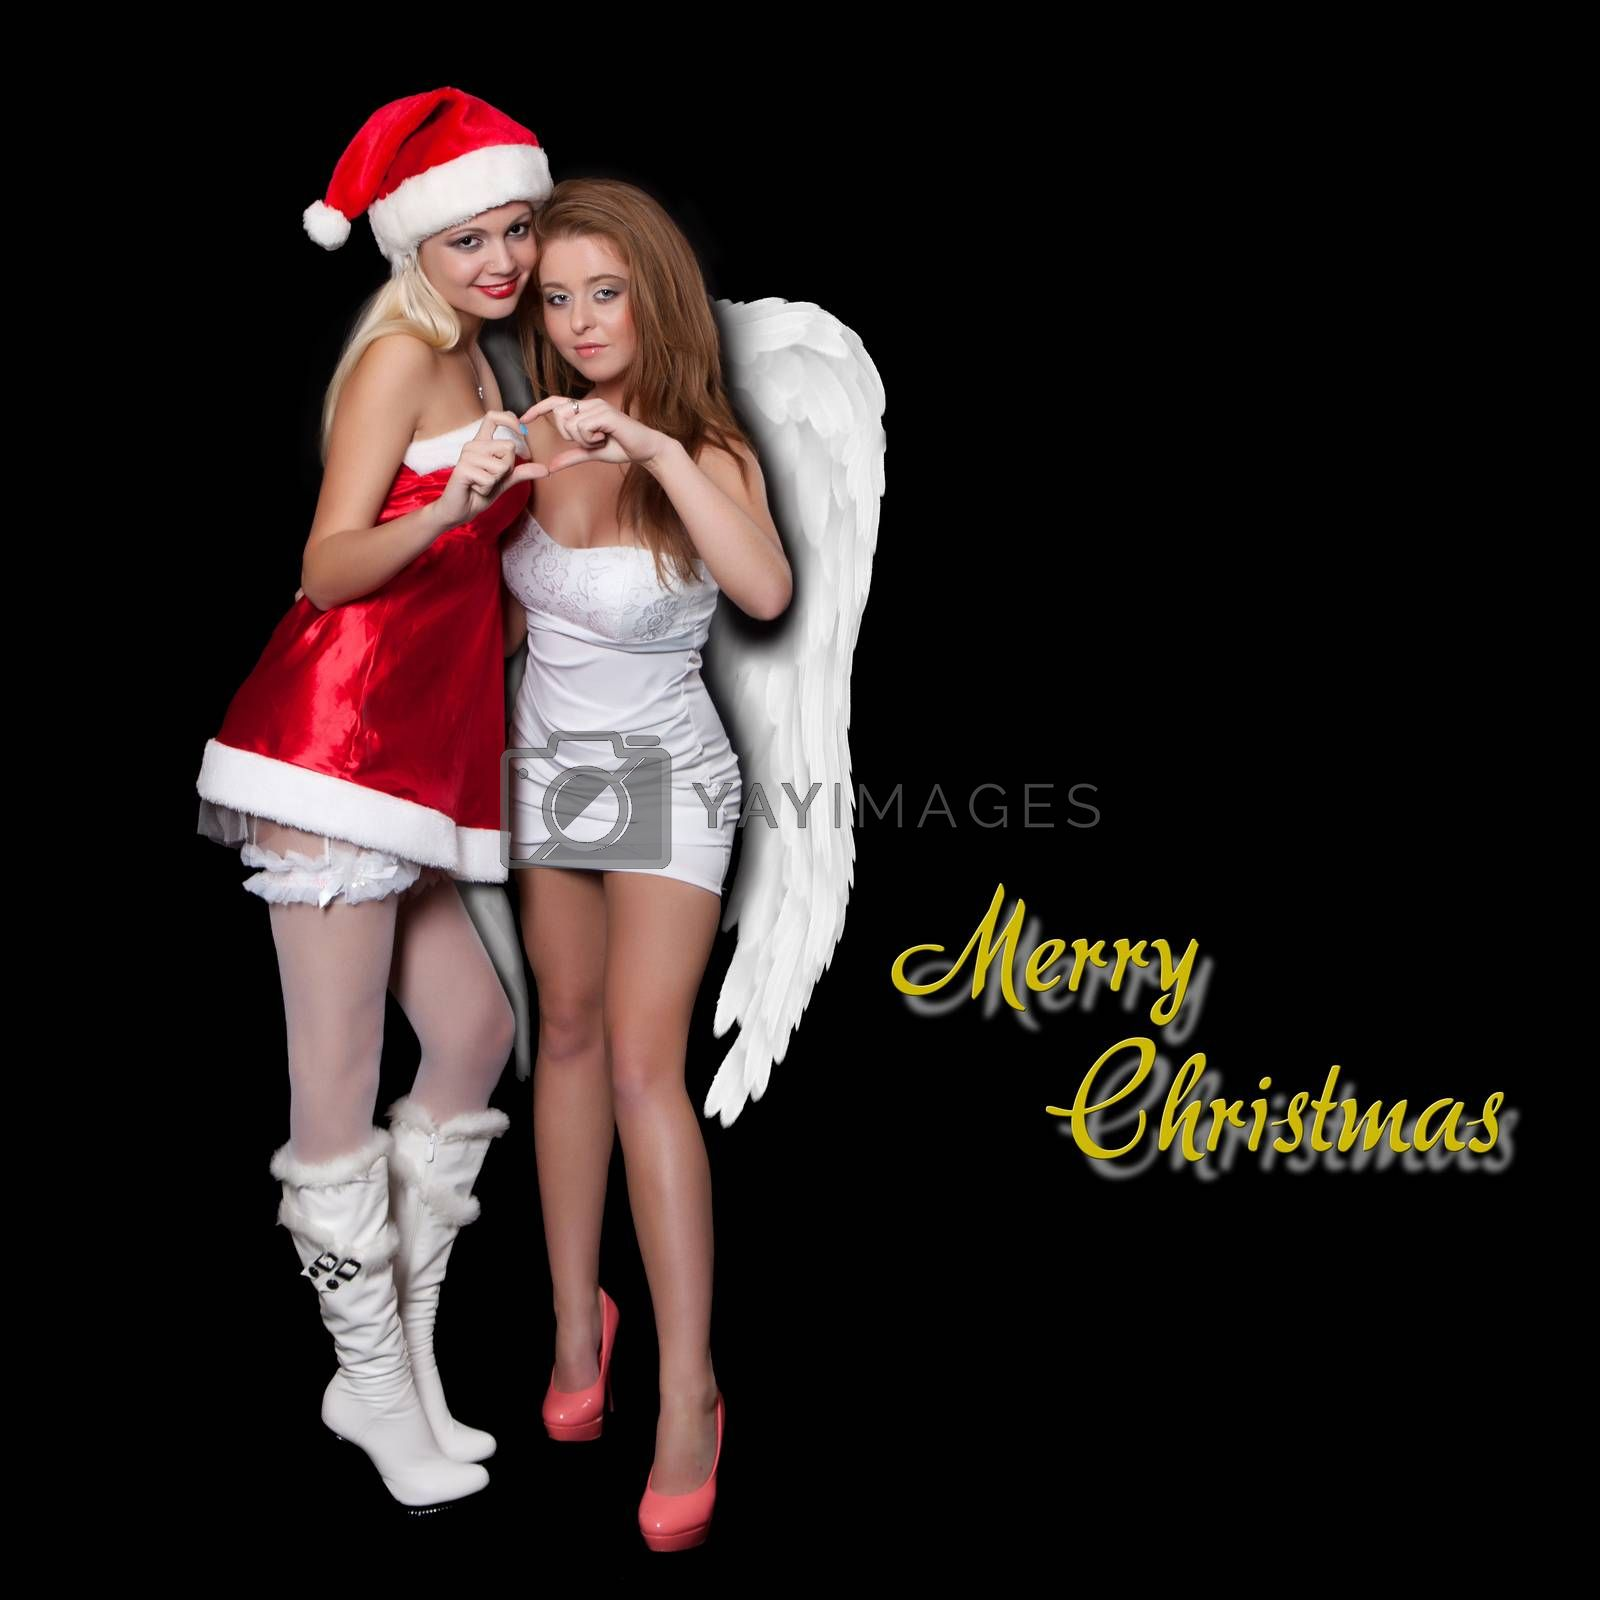 Girls sexy Santa Claus and Angel pointing fingers heart, with the words Merry Christmas